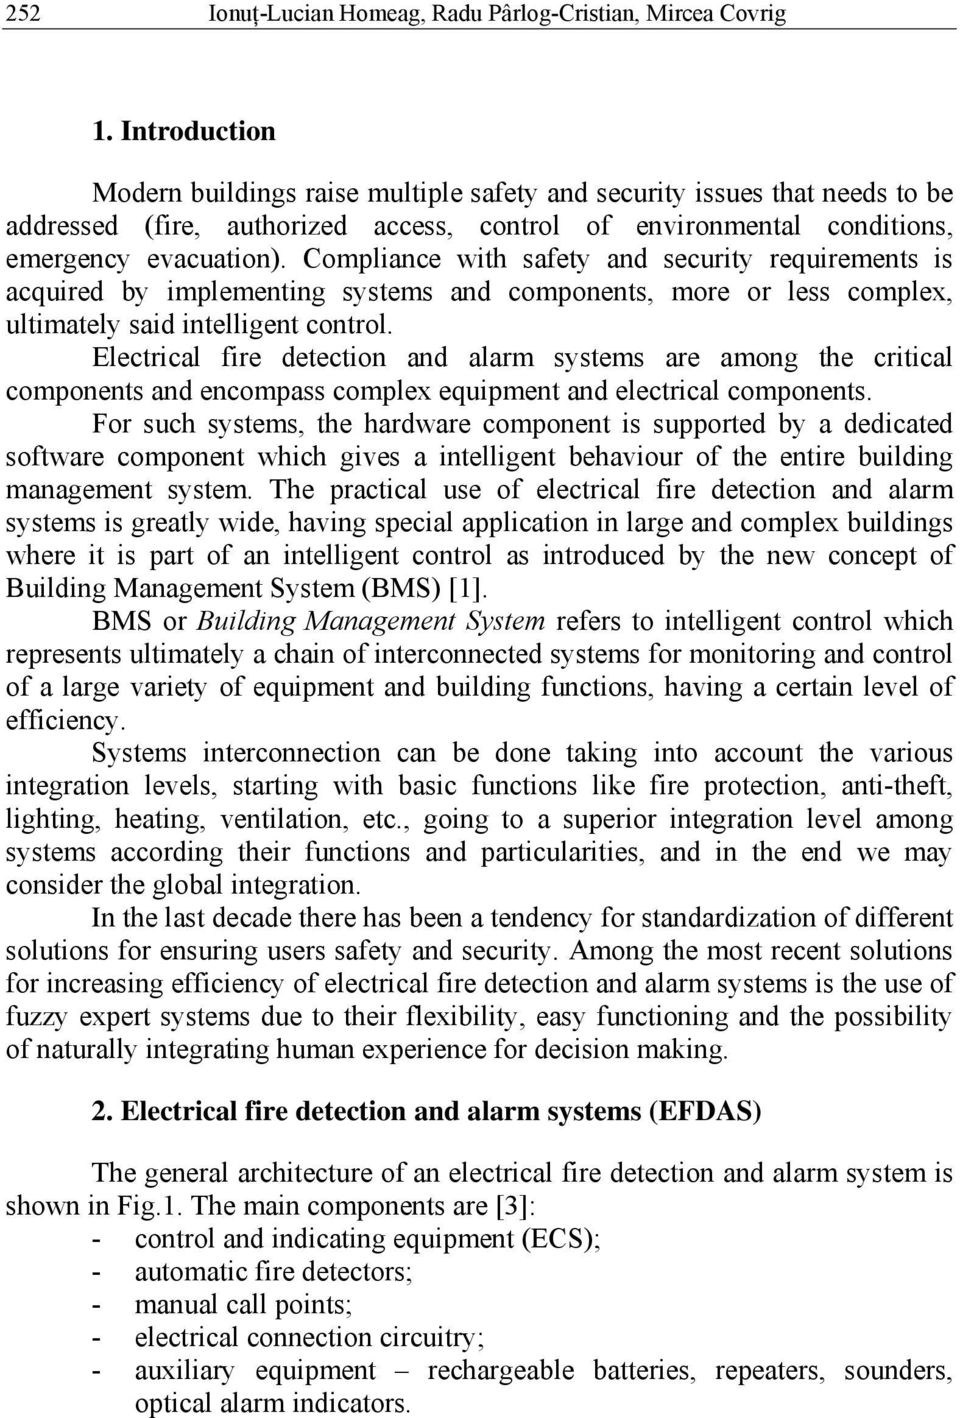 Complance wth safety and securty requrements s acqured by mplementng systems and components, more or less complex, ultmately sad ntellgent control.